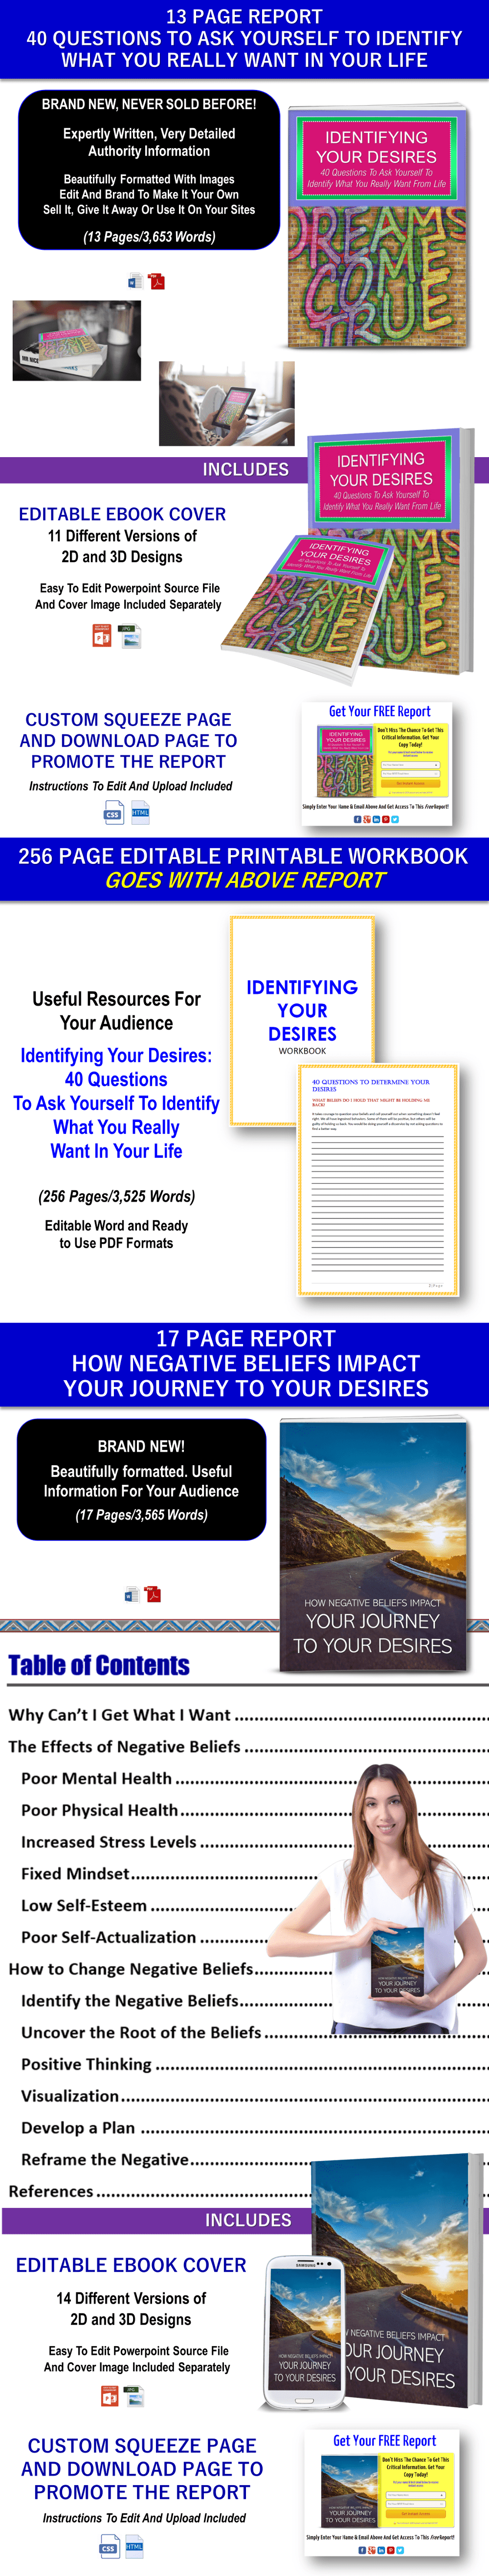 Identifying Desires/Making Decisions Content - Private Label Rights